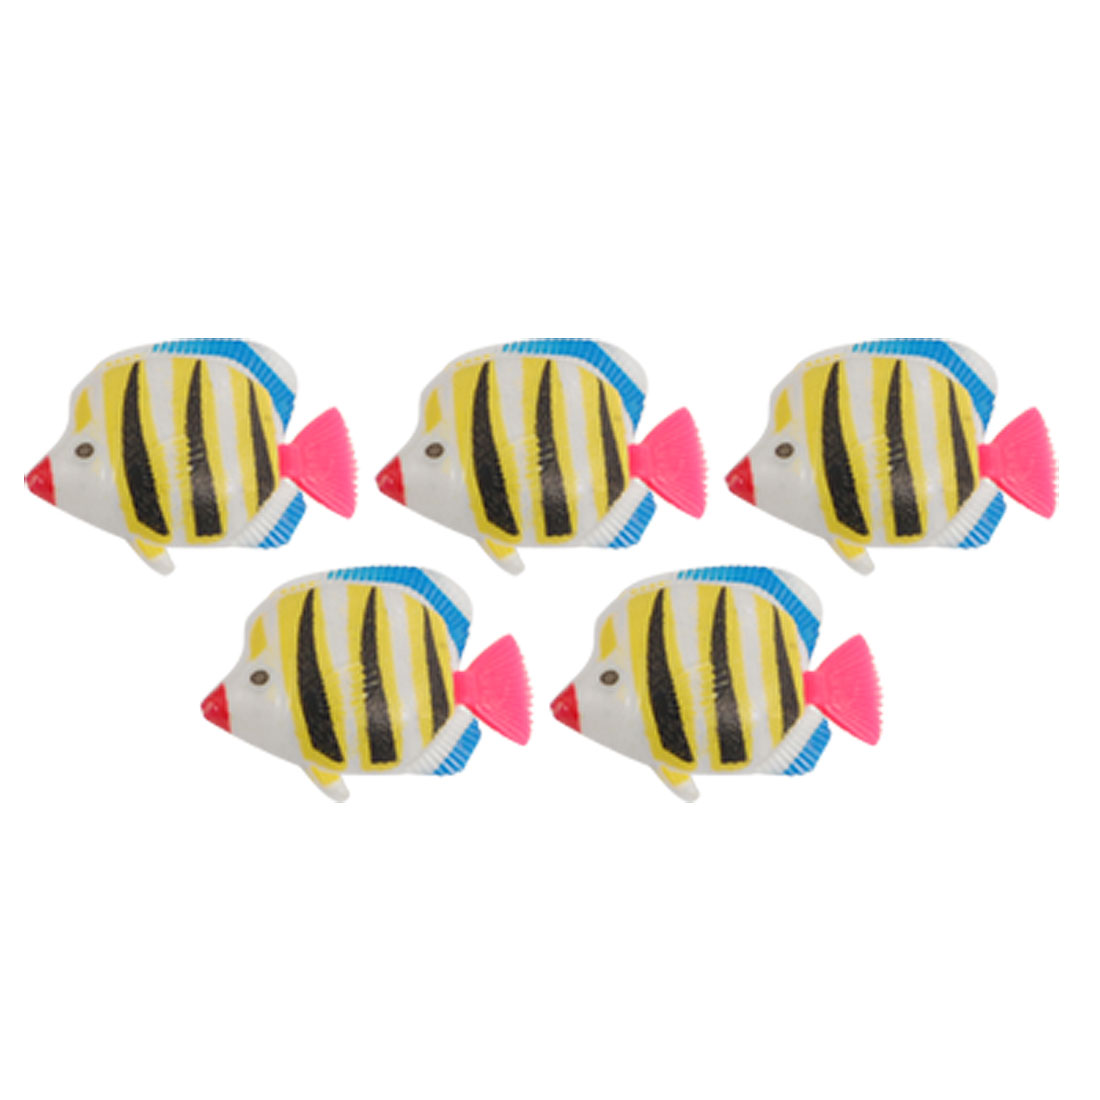 Aquarium Yellow Black Striped Plastic Fish Decoration